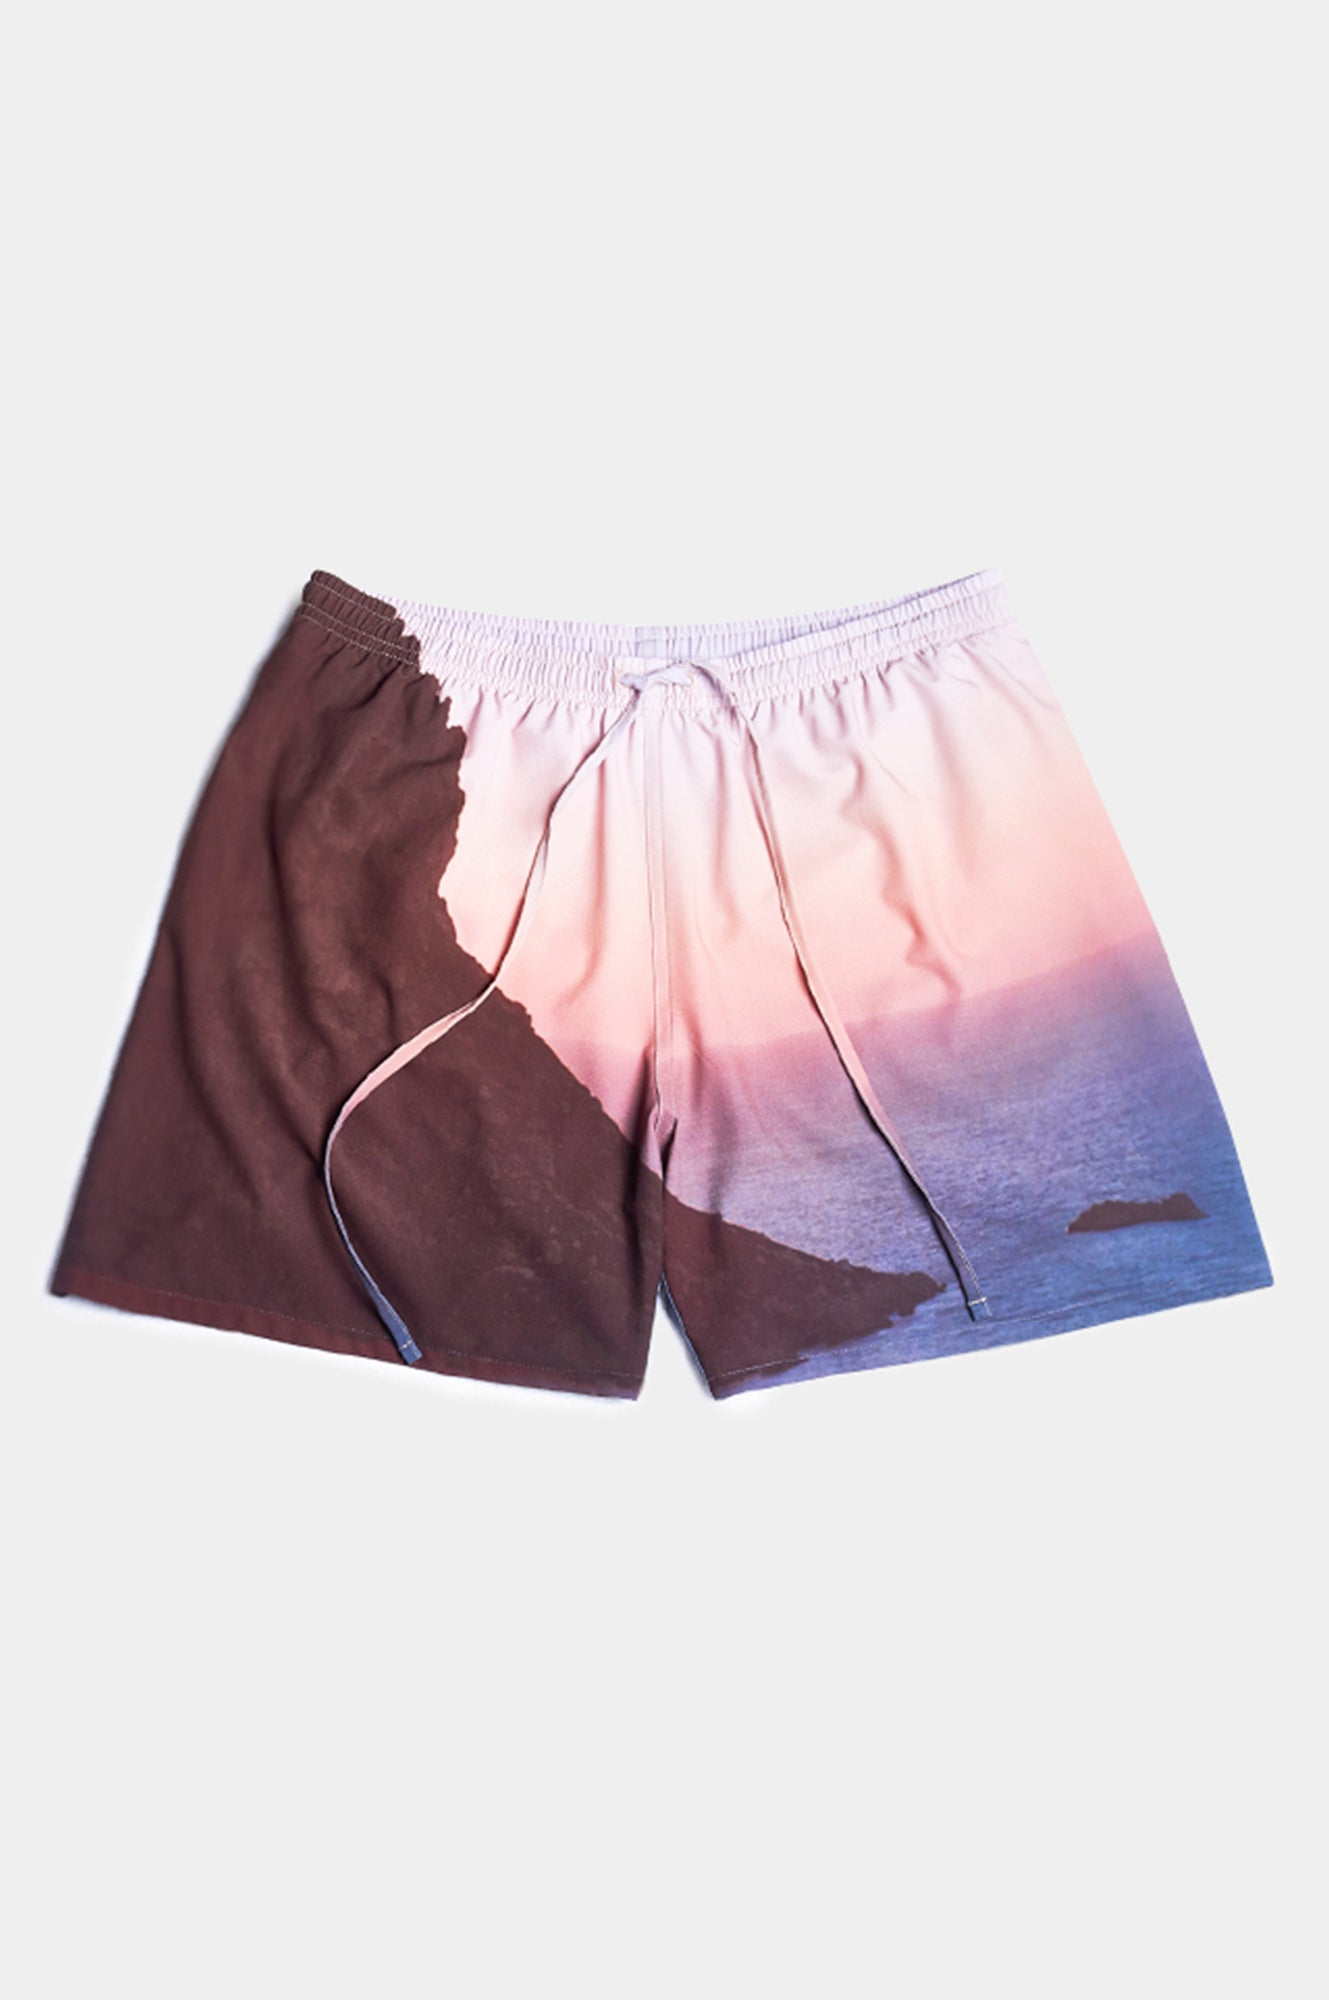 ES VEDRA SUNSET PRINT SHORTS